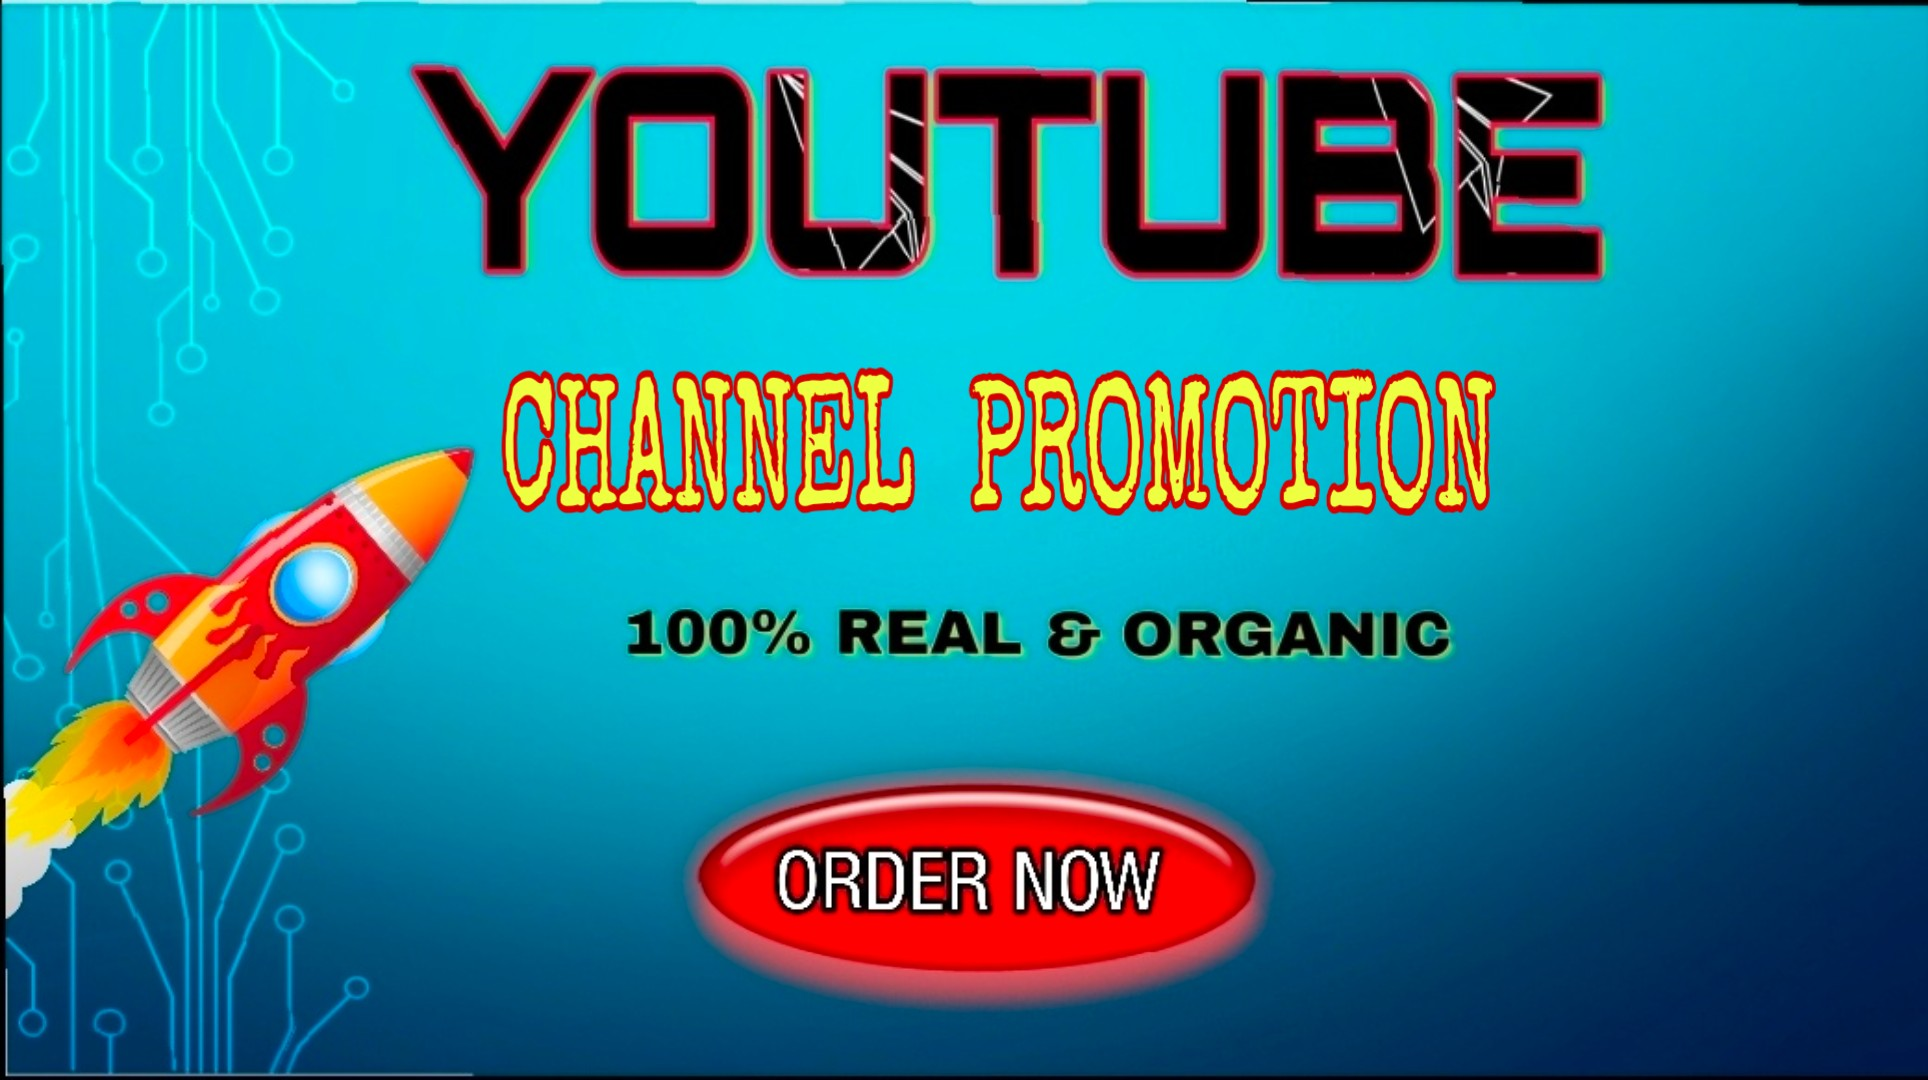 Best Youtube package Combo offer for you instantly 24 houres delivery